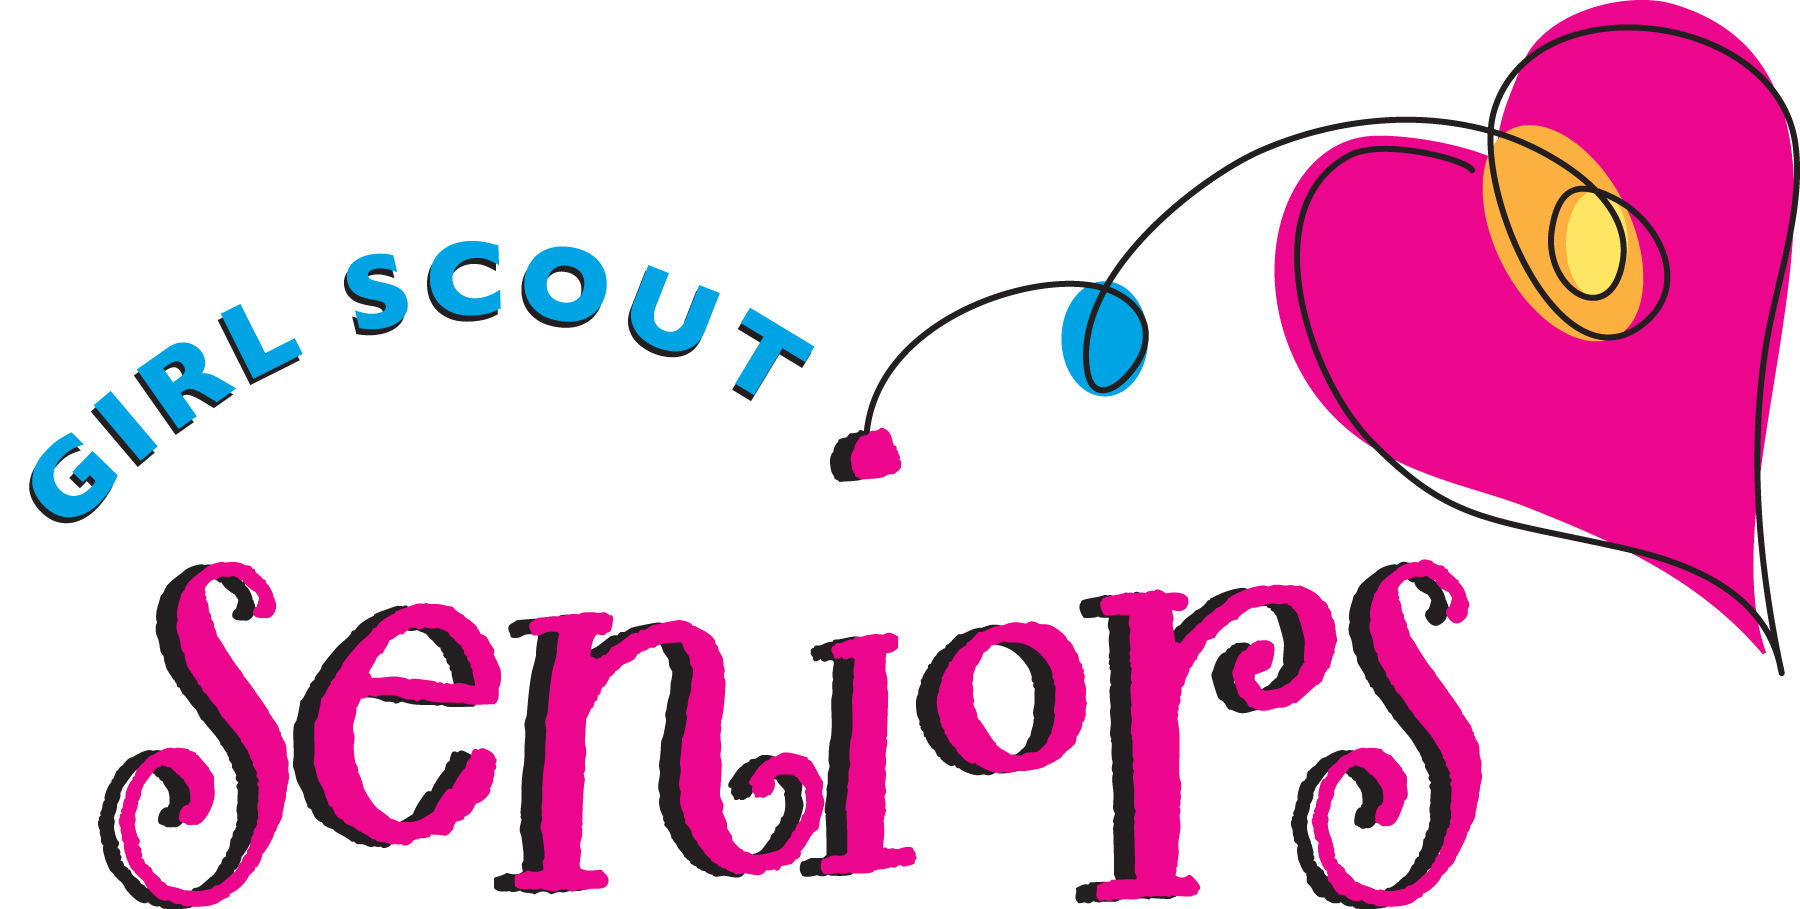 1800x909 Girl Scout Images Senior Girl Scouts (Grades 9